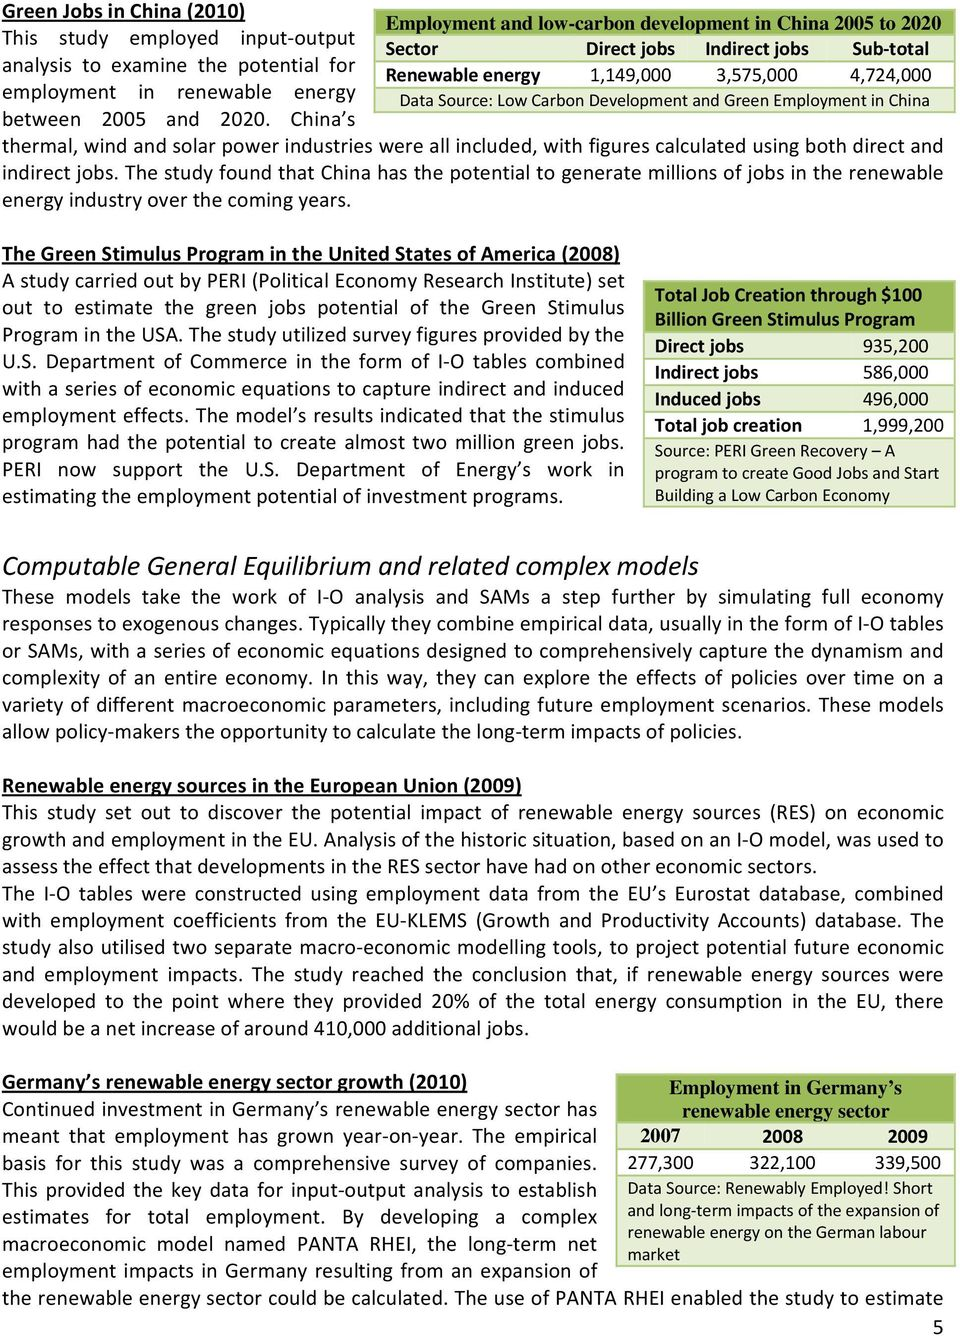 Green Employment in China thermal, wind and solar power industries were all included, with figures calculated using both direct and indirect jobs.